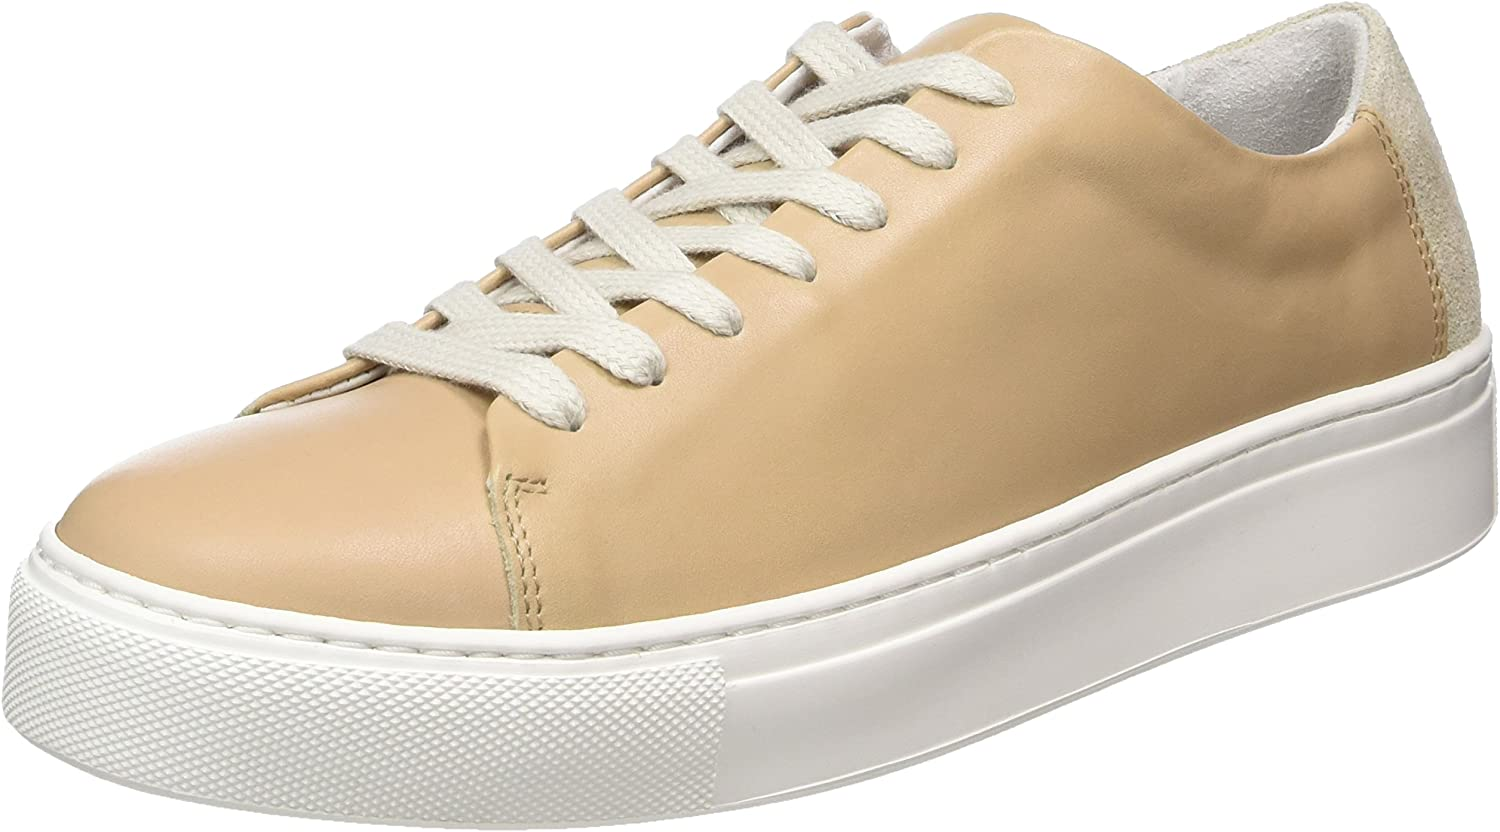 Selected Femme women Sneaker - Nude (Leather) Womens Trainers